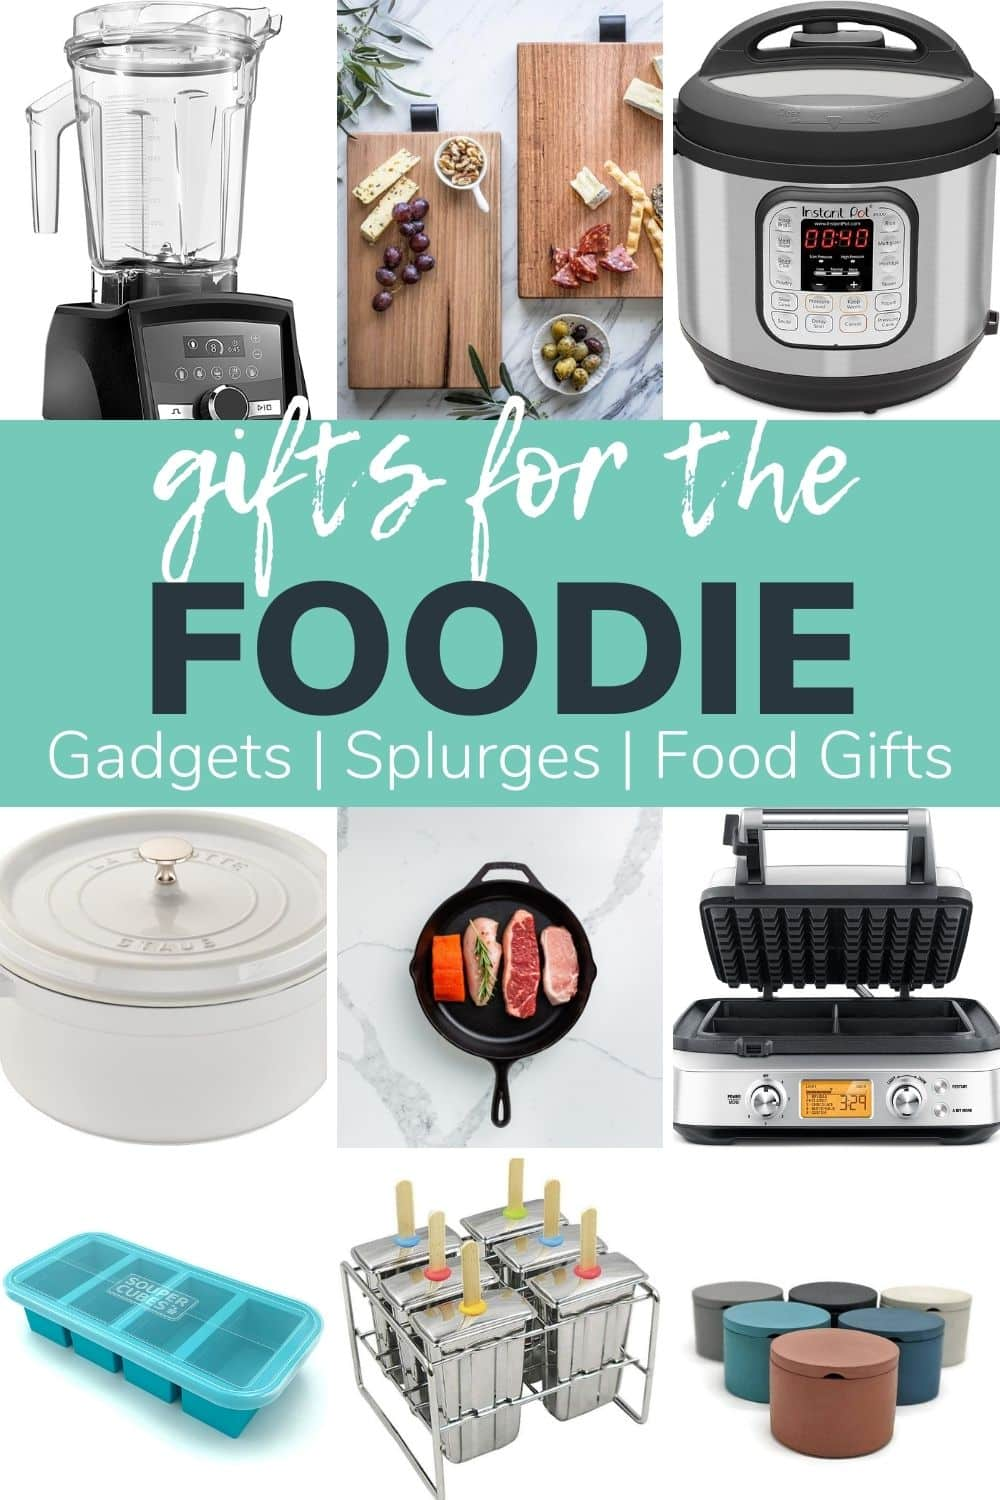 "Photo collage of kitchen and food items with text overlay ""Gifts For The Foodie: Gadgets, Splurges, Food Gifts"""